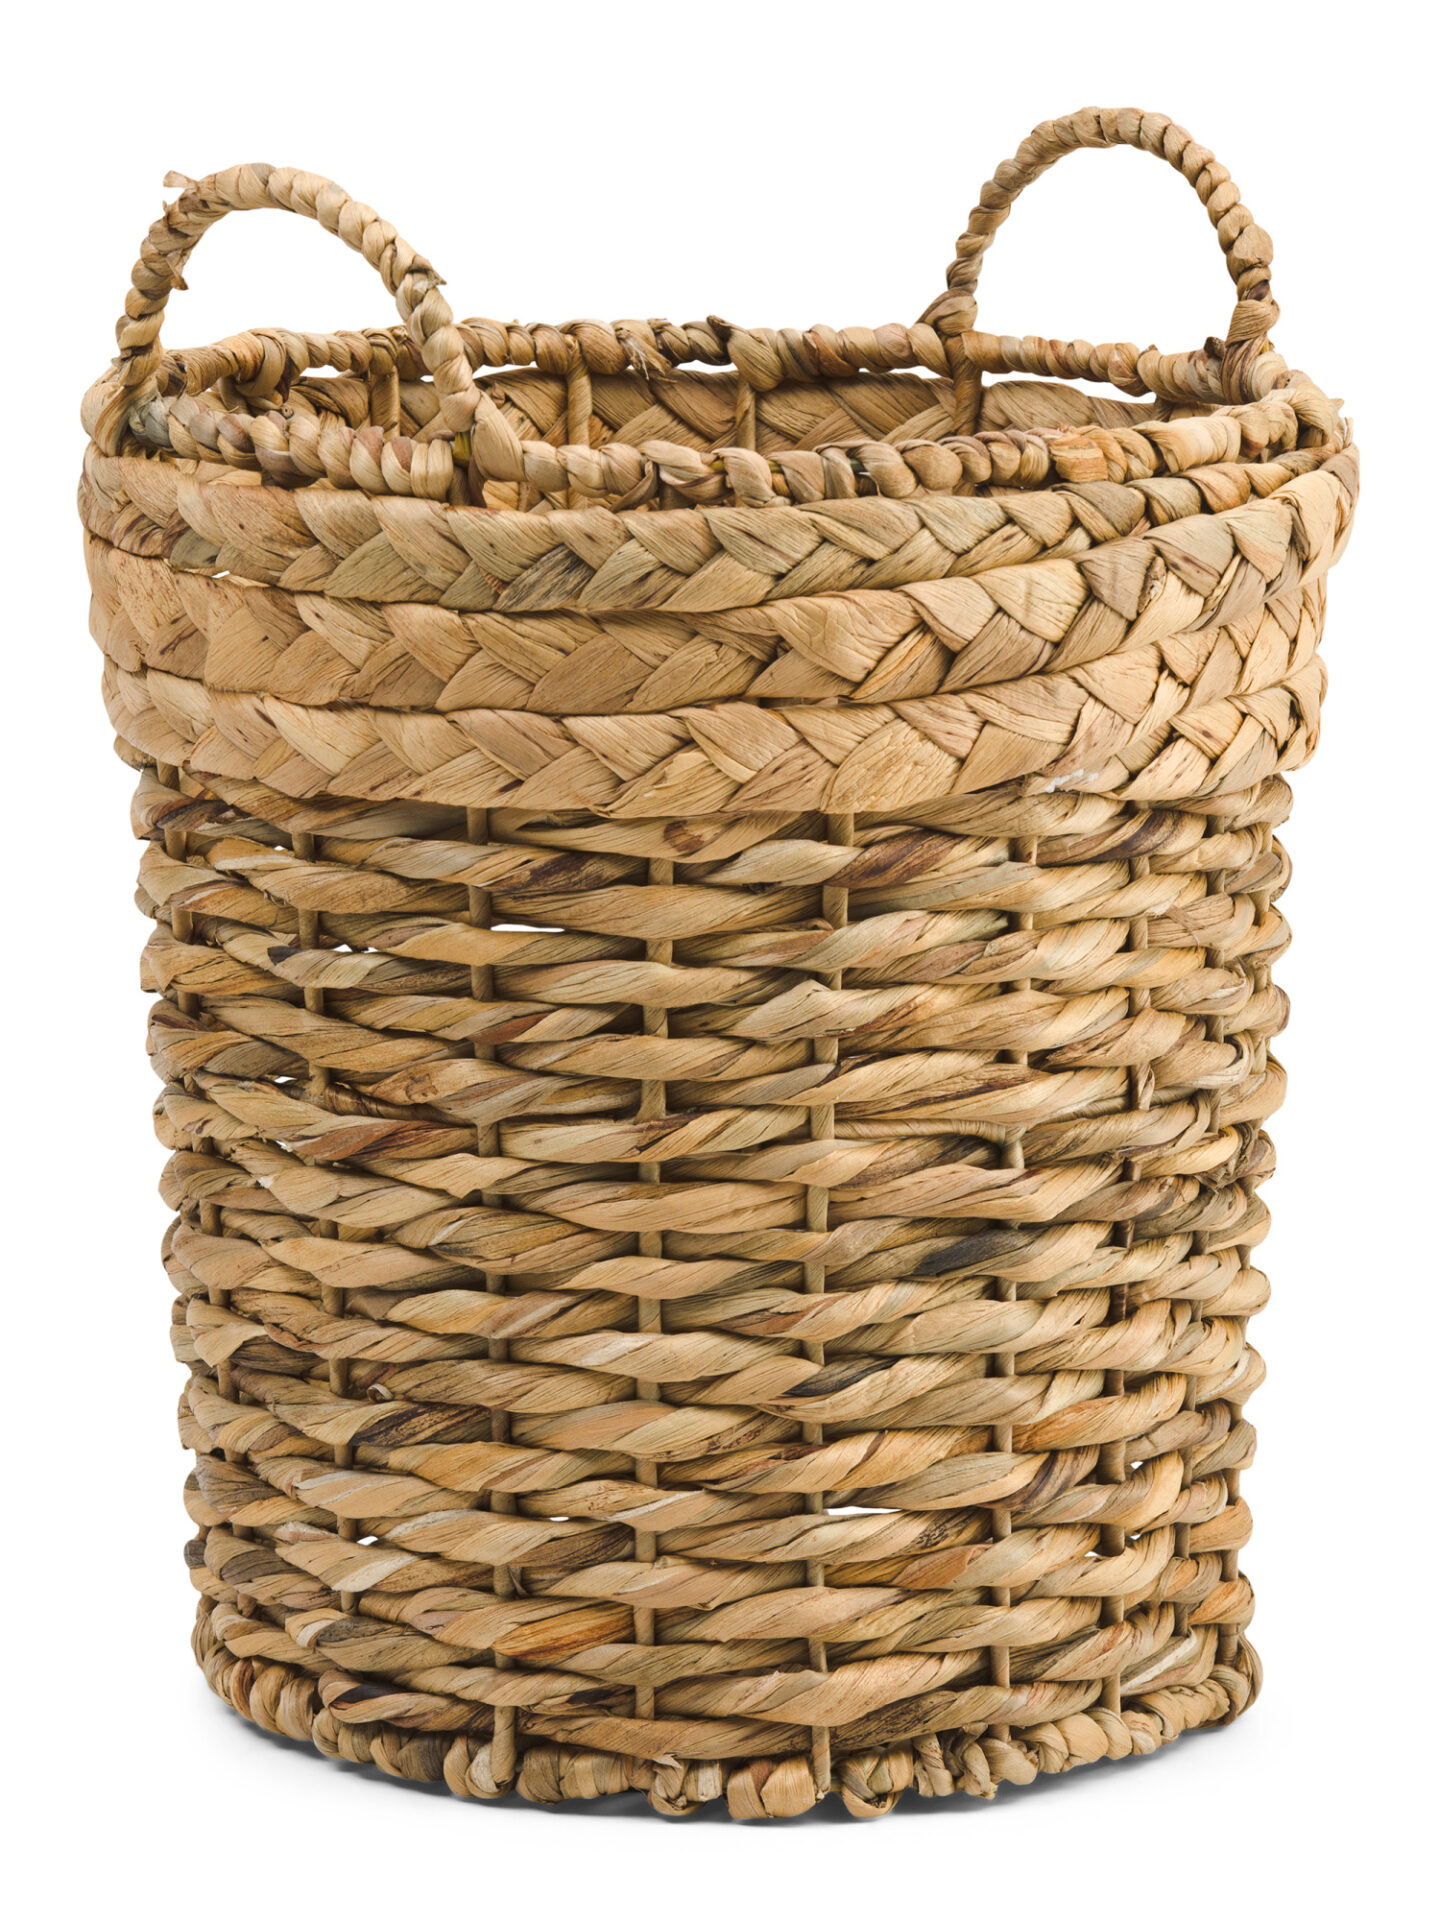 Handled twist braid basket